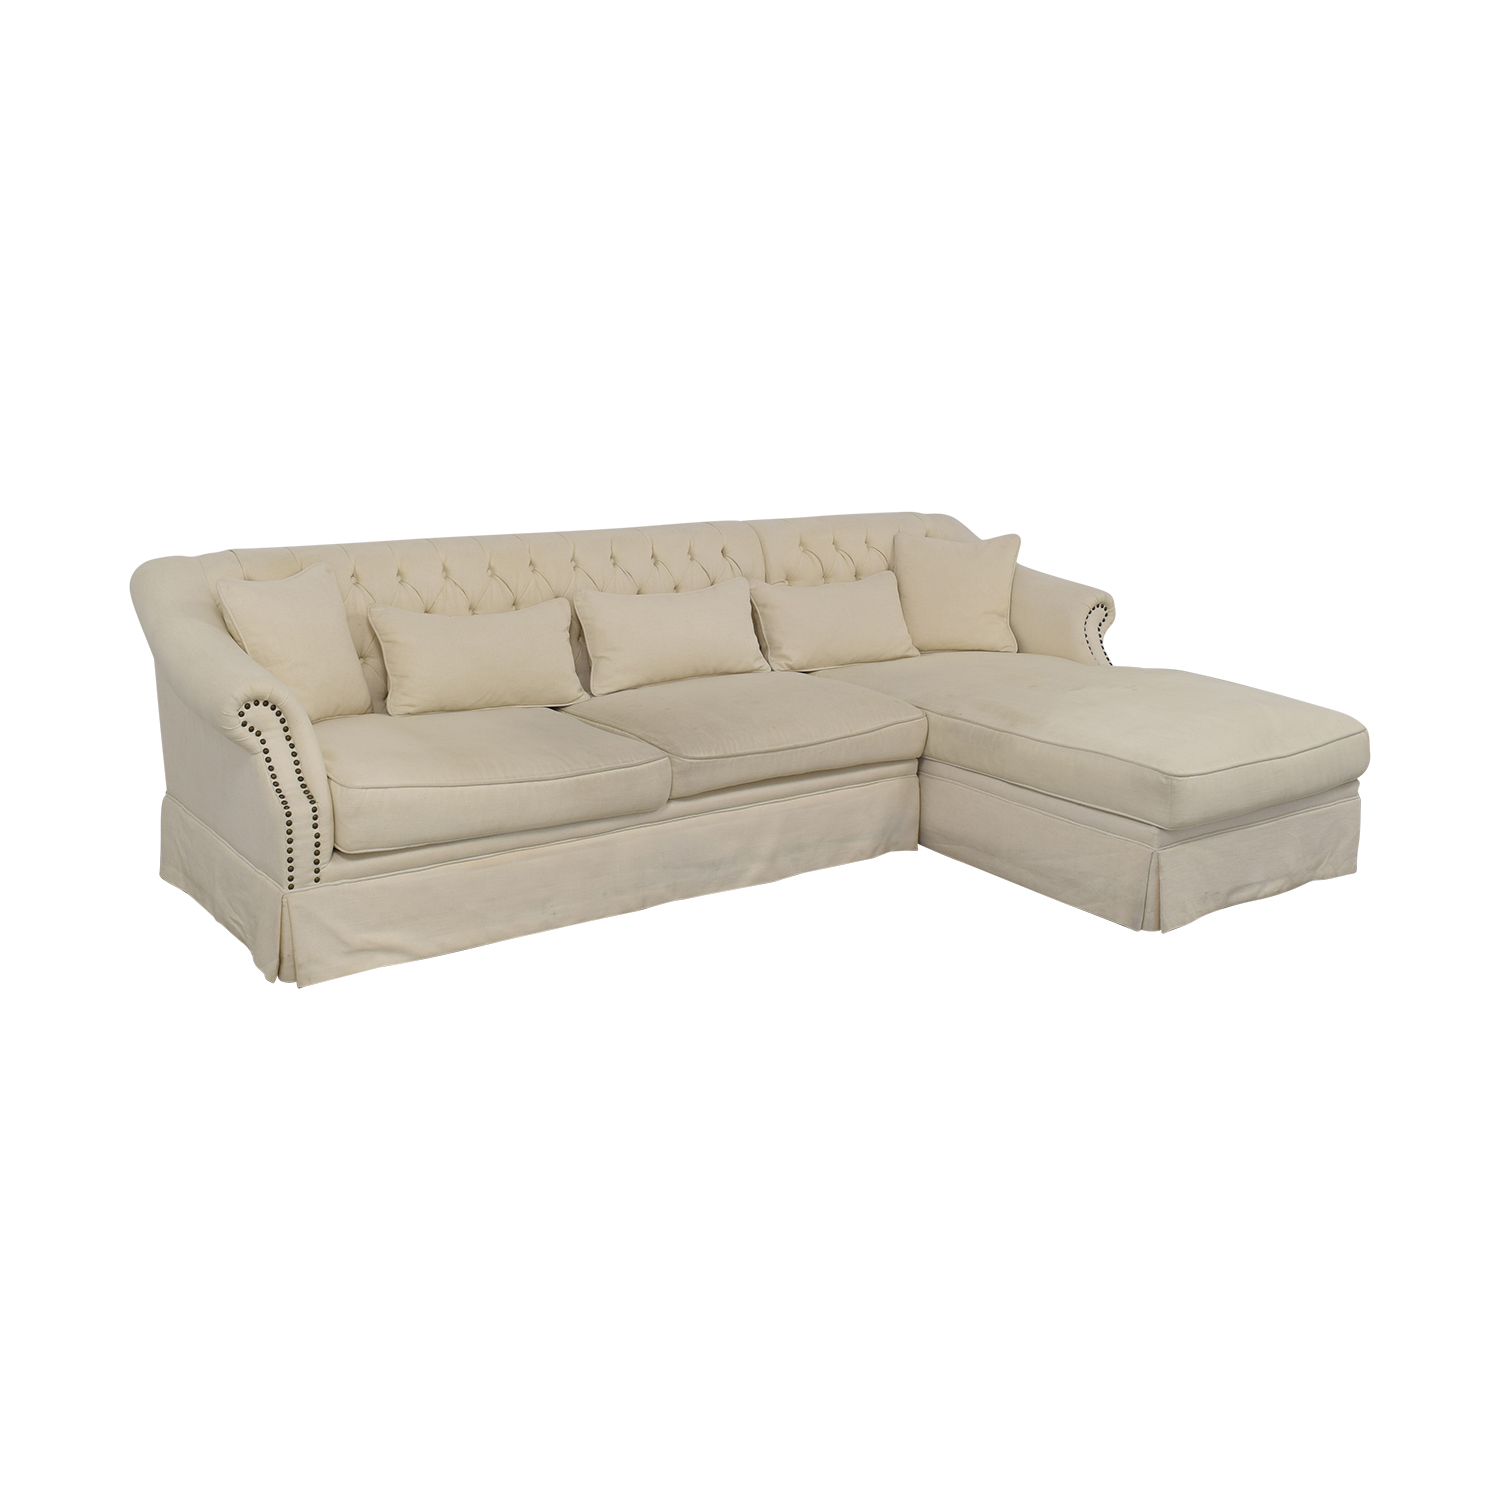 buy ABC Carpet & Home Chaise Sectional Sofa ABC Carpet & Home Sectionals